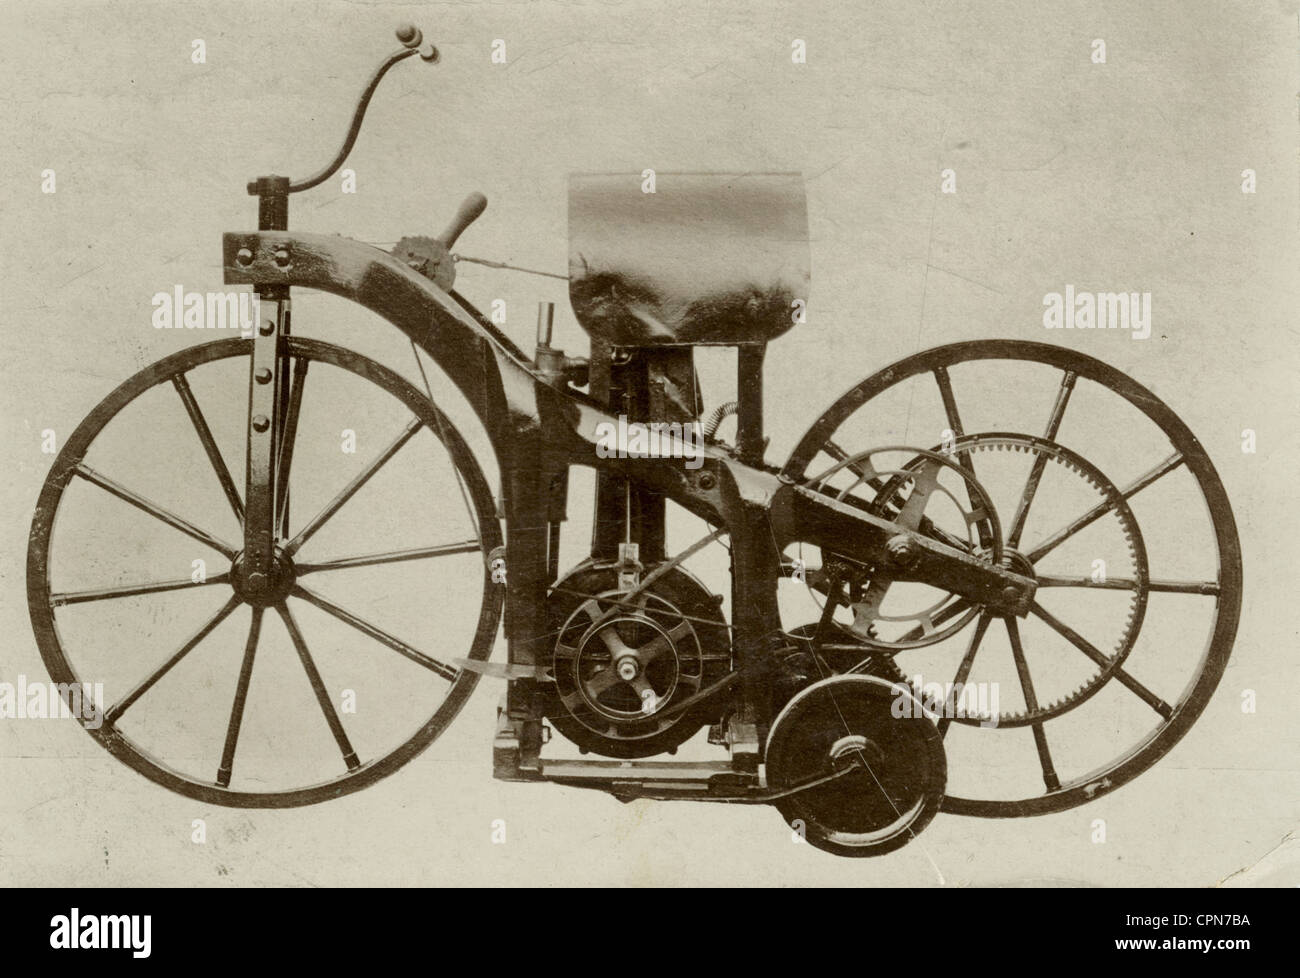 first motorcycle 1885. stock photo - transport, motorcycle, first motorcycle in the world, constructed by gottlieb daimler and wilhelm maybach, patented as paraffin 1885